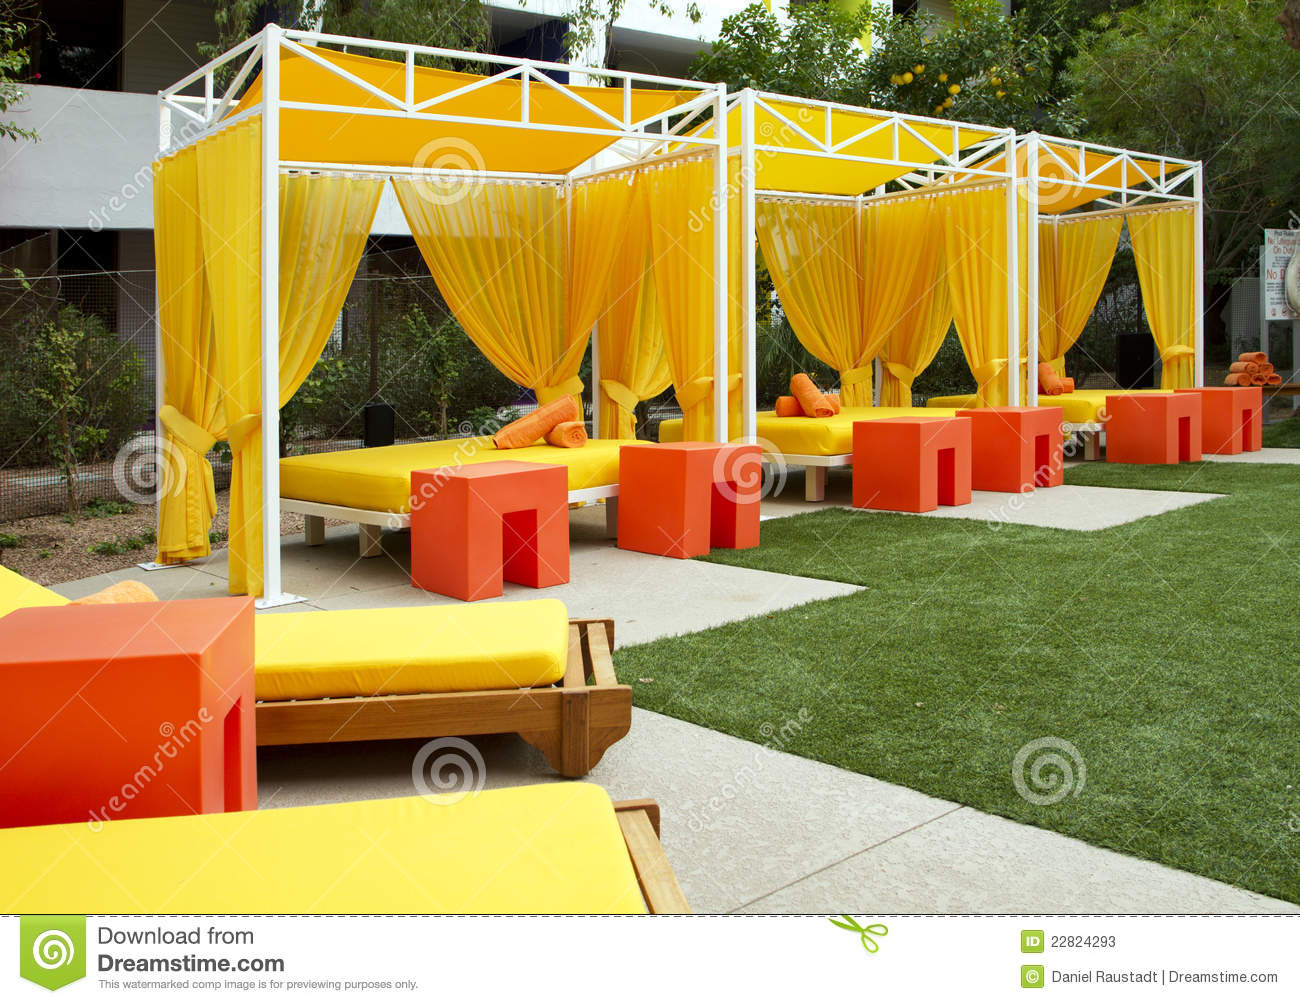 Hotel Swimming and Wading Pool Cabanas & Hotel Swimming And Wading Pool Cabanas Stock Image - Image of ...